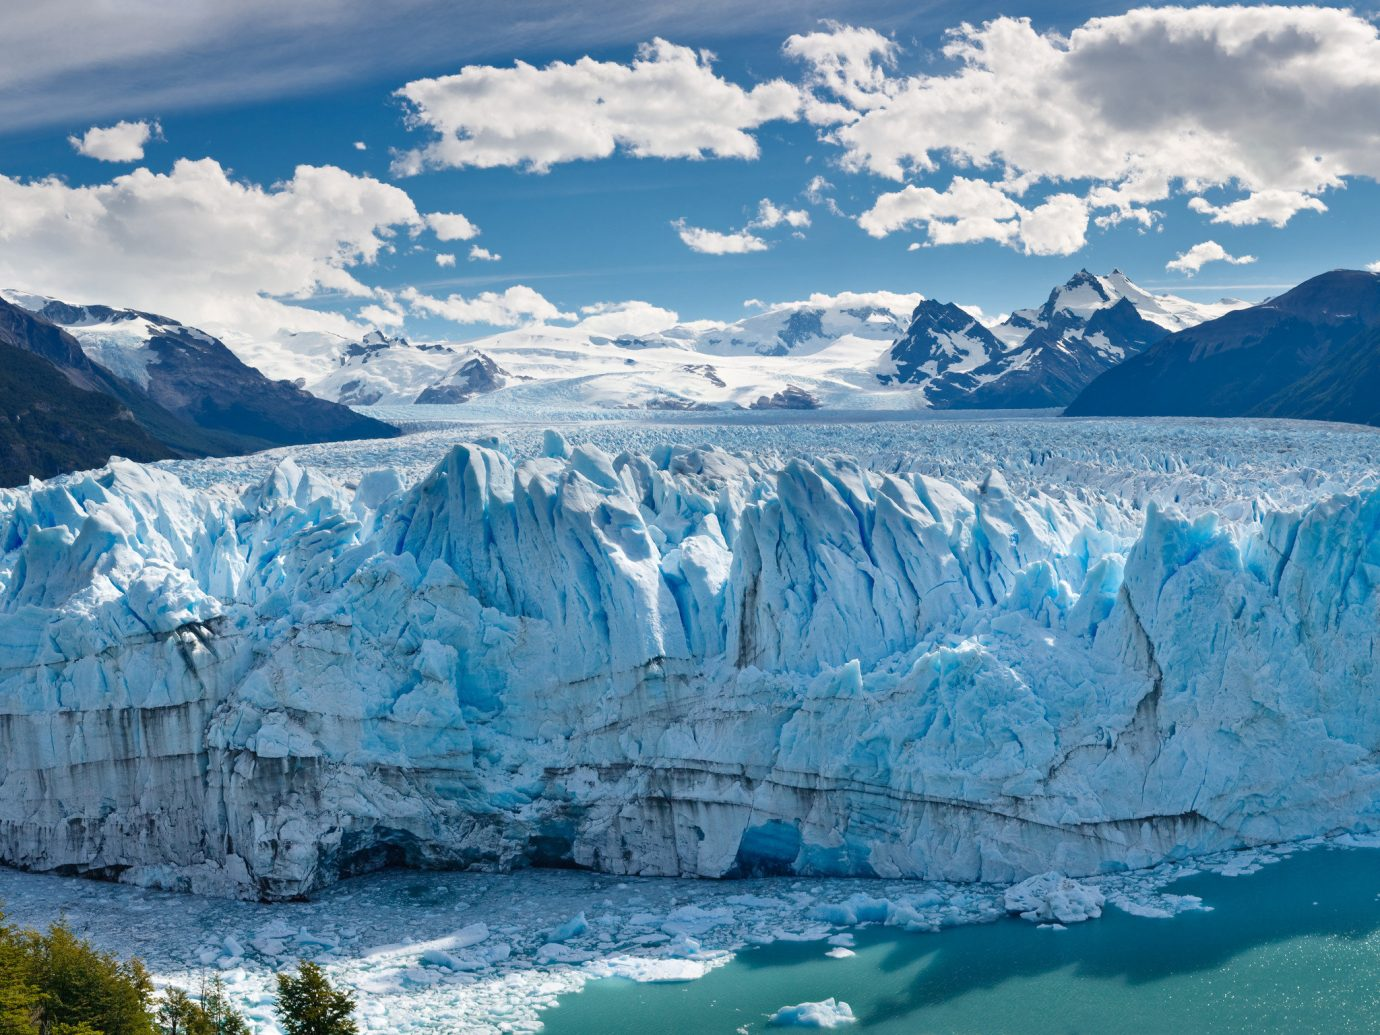 Jetsetter Guides Outdoors + Adventure Packing Tips Travel Tips Trip Ideas mountain sky Nature outdoor ice glacier glacial lake wilderness glacial landform mount scenery ice cap polar ice cap cirque water resources canyon fjord iceberg moraine mountain range crater lake background terrain national park arctic sea ice cliff Lake melting massif watercourse arctic ocean water computer wallpaper overlooking distance